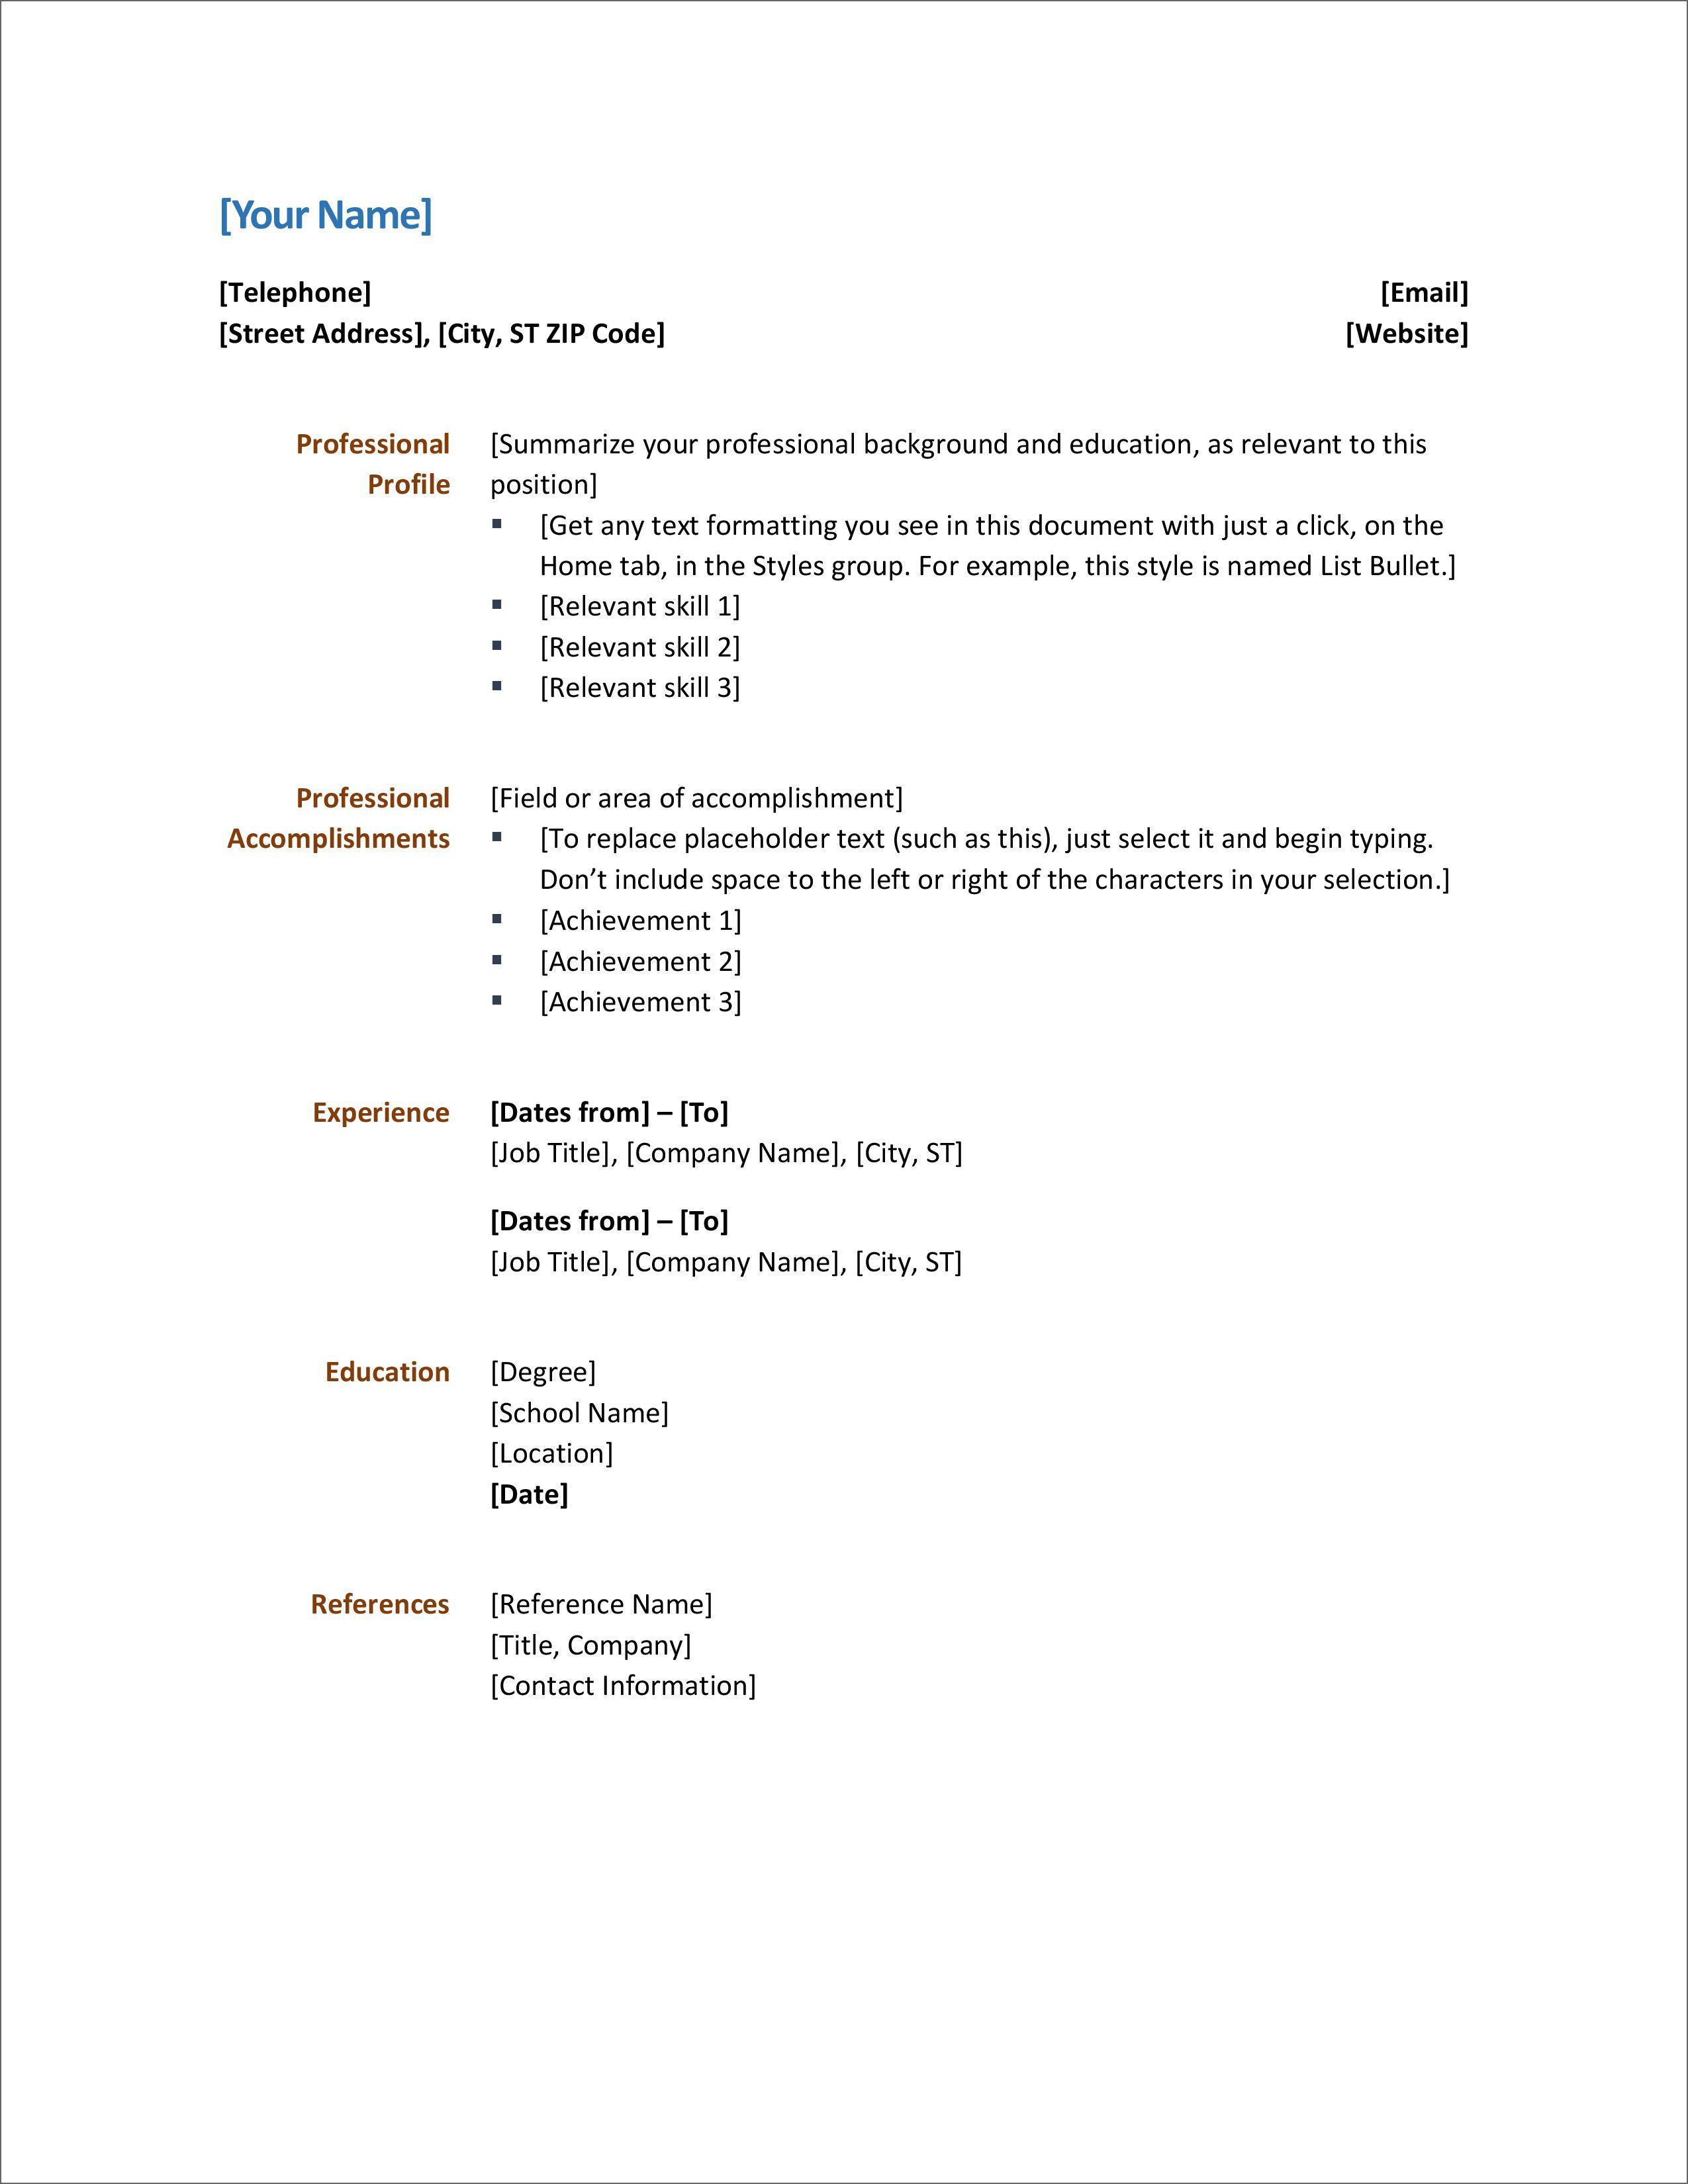 006 Stunning Resume Format Example Free Download High Def Full